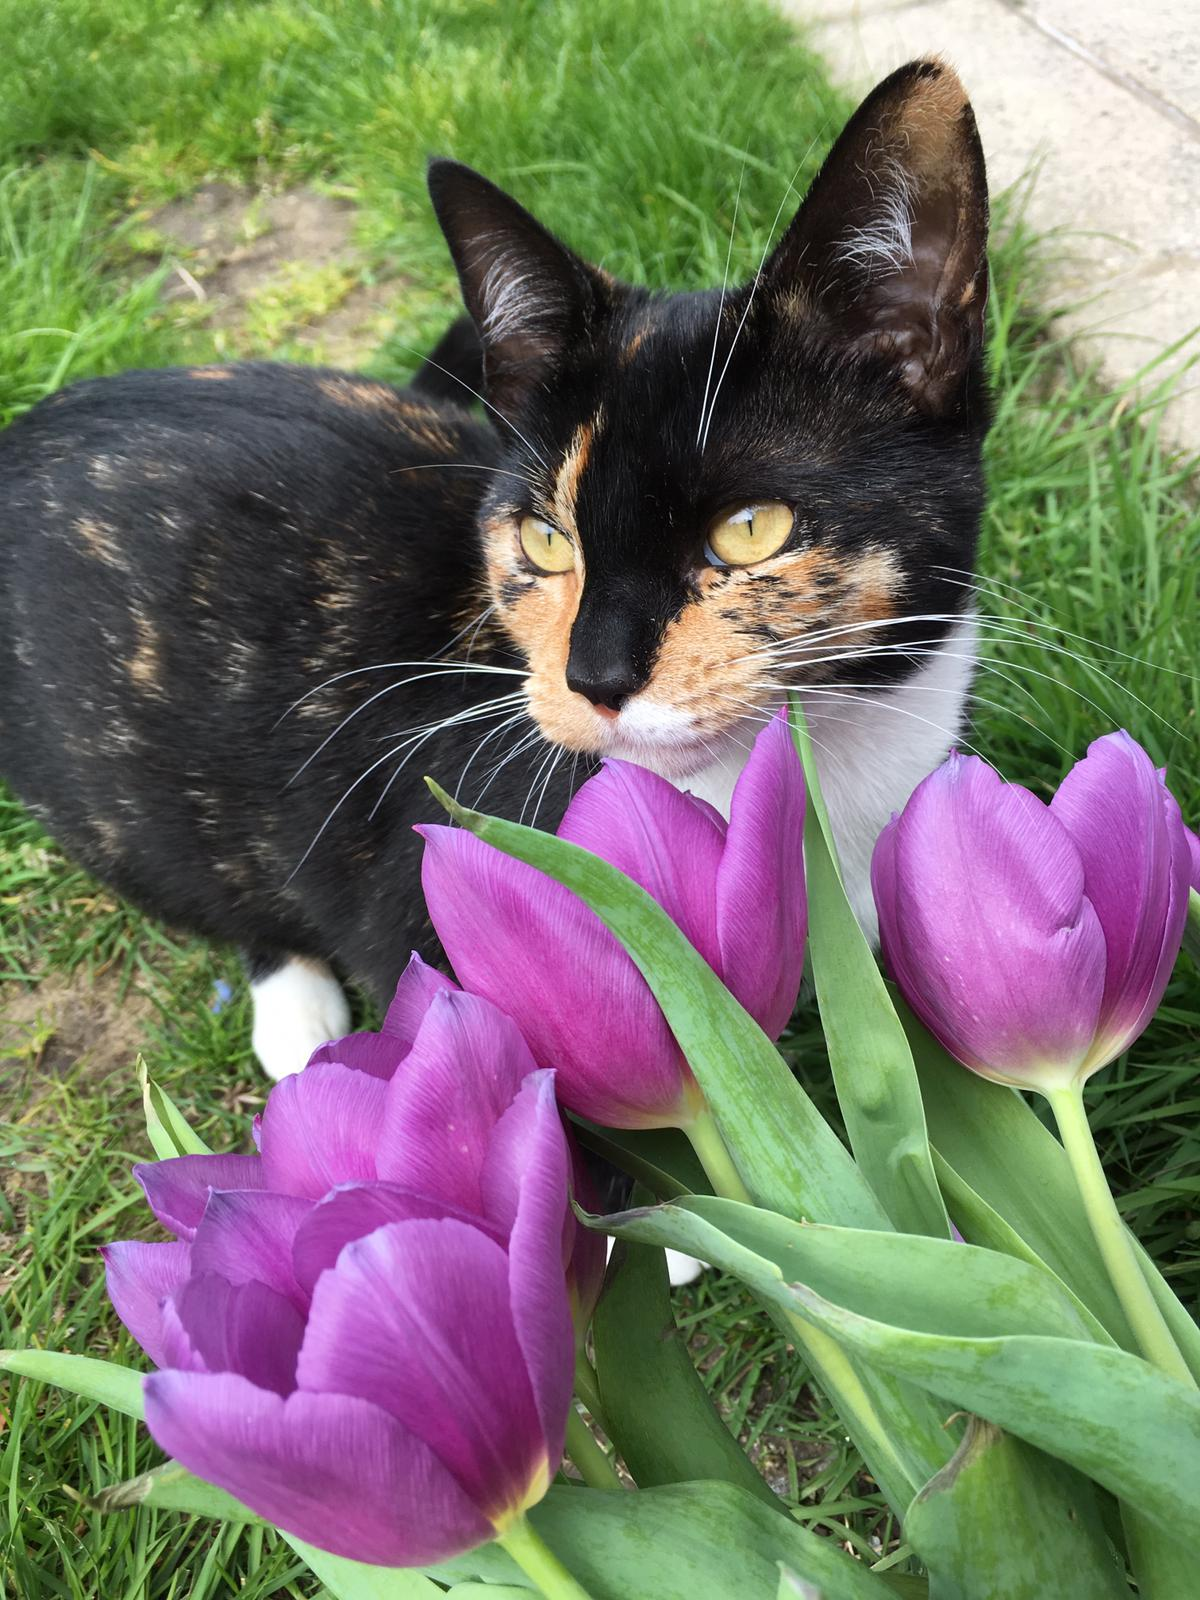 RSPCA appealing for information after cat died after being